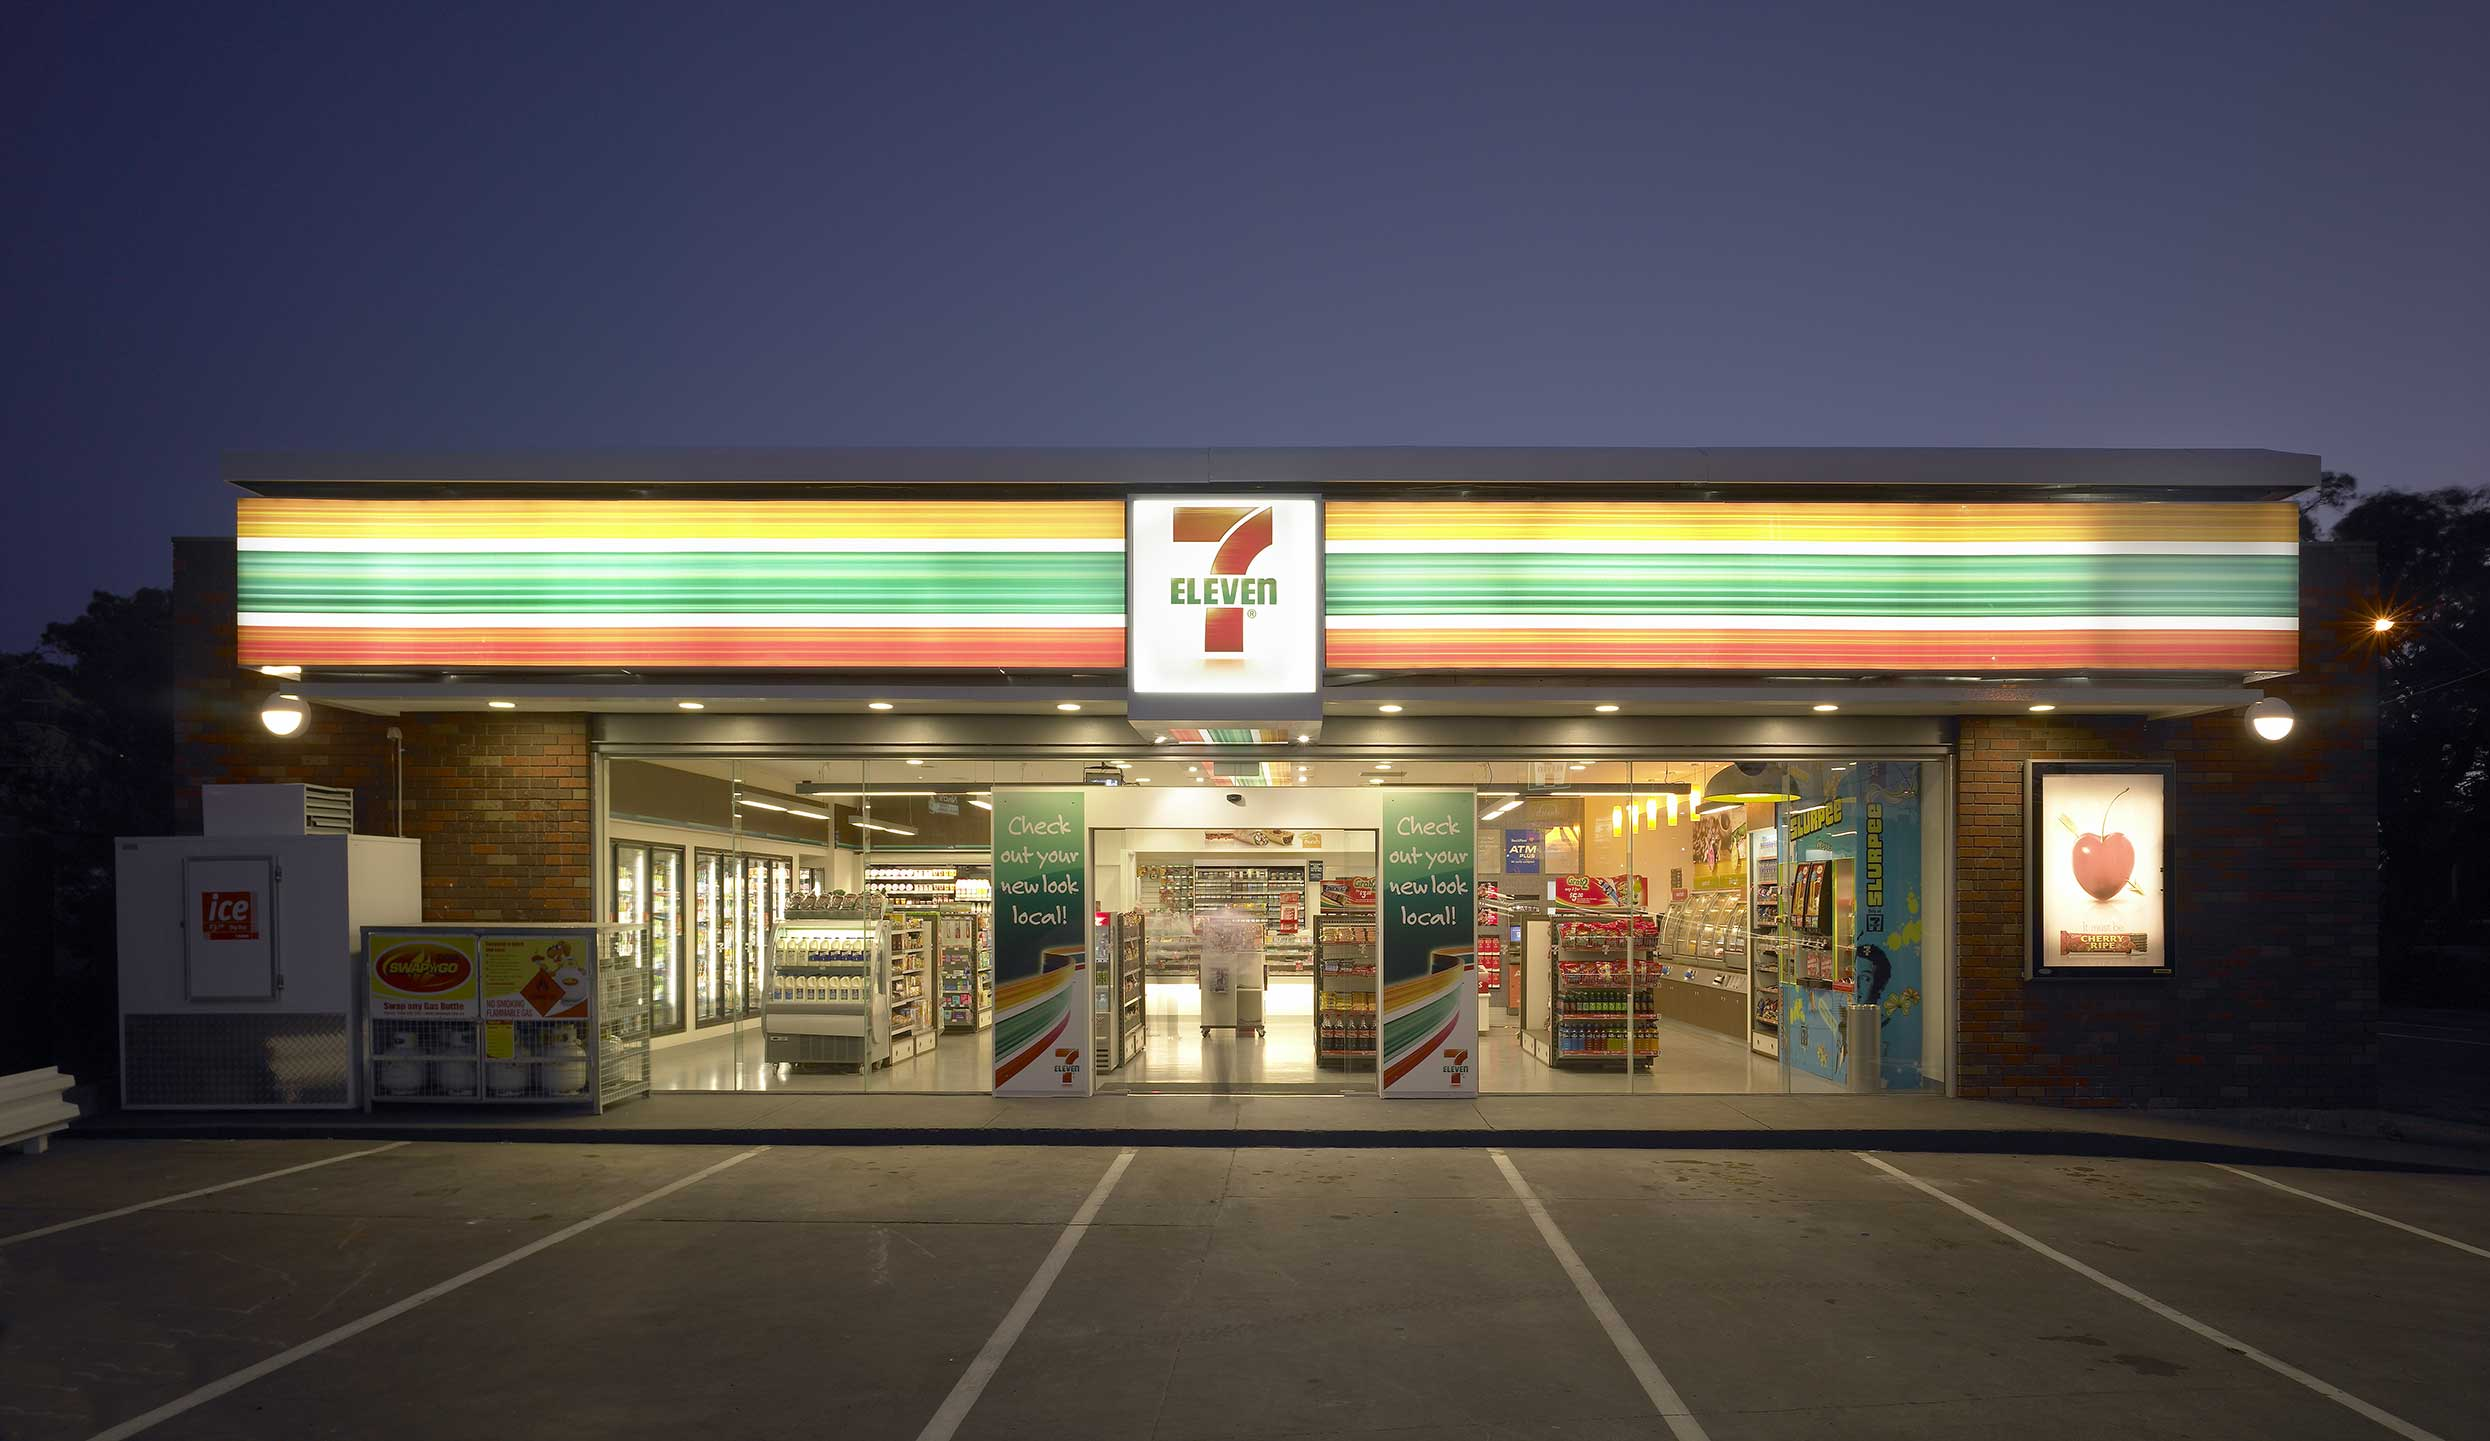 7 eleven Today is that magical day we've all been waiting for: july 11, better known as 7/ 11 and since it's 7/11, the beloved convenience store chain.